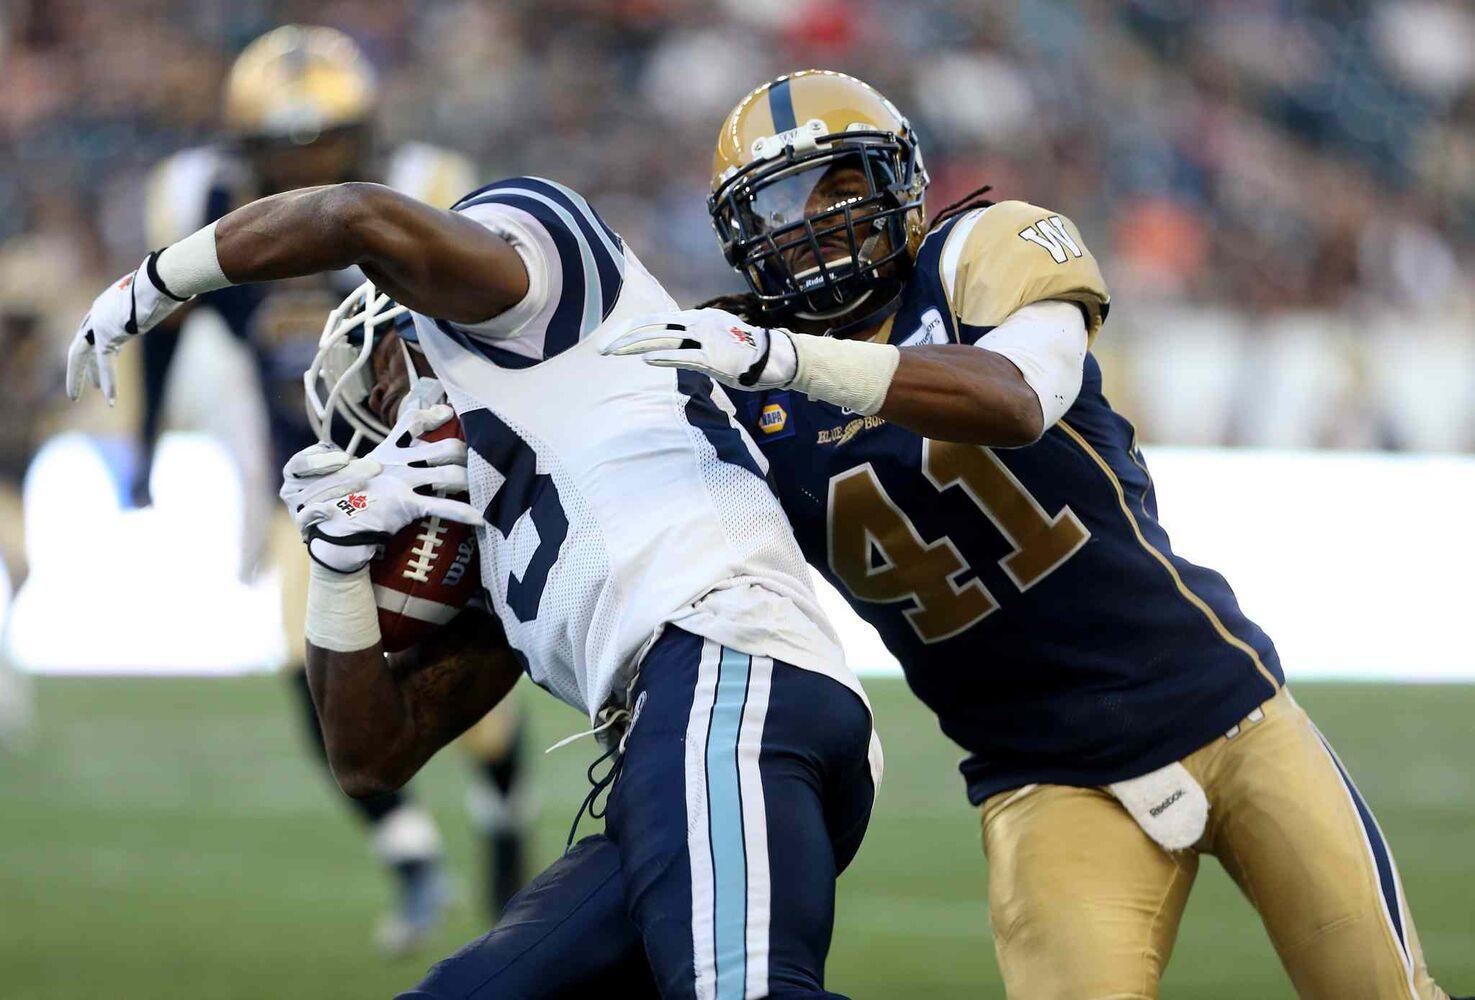 Toronto's Terrell Sinkfield spins off of Winnipeg's Don Unamba during the first half. (TREVOR HAGAN / THE CANADIAN PRESS)